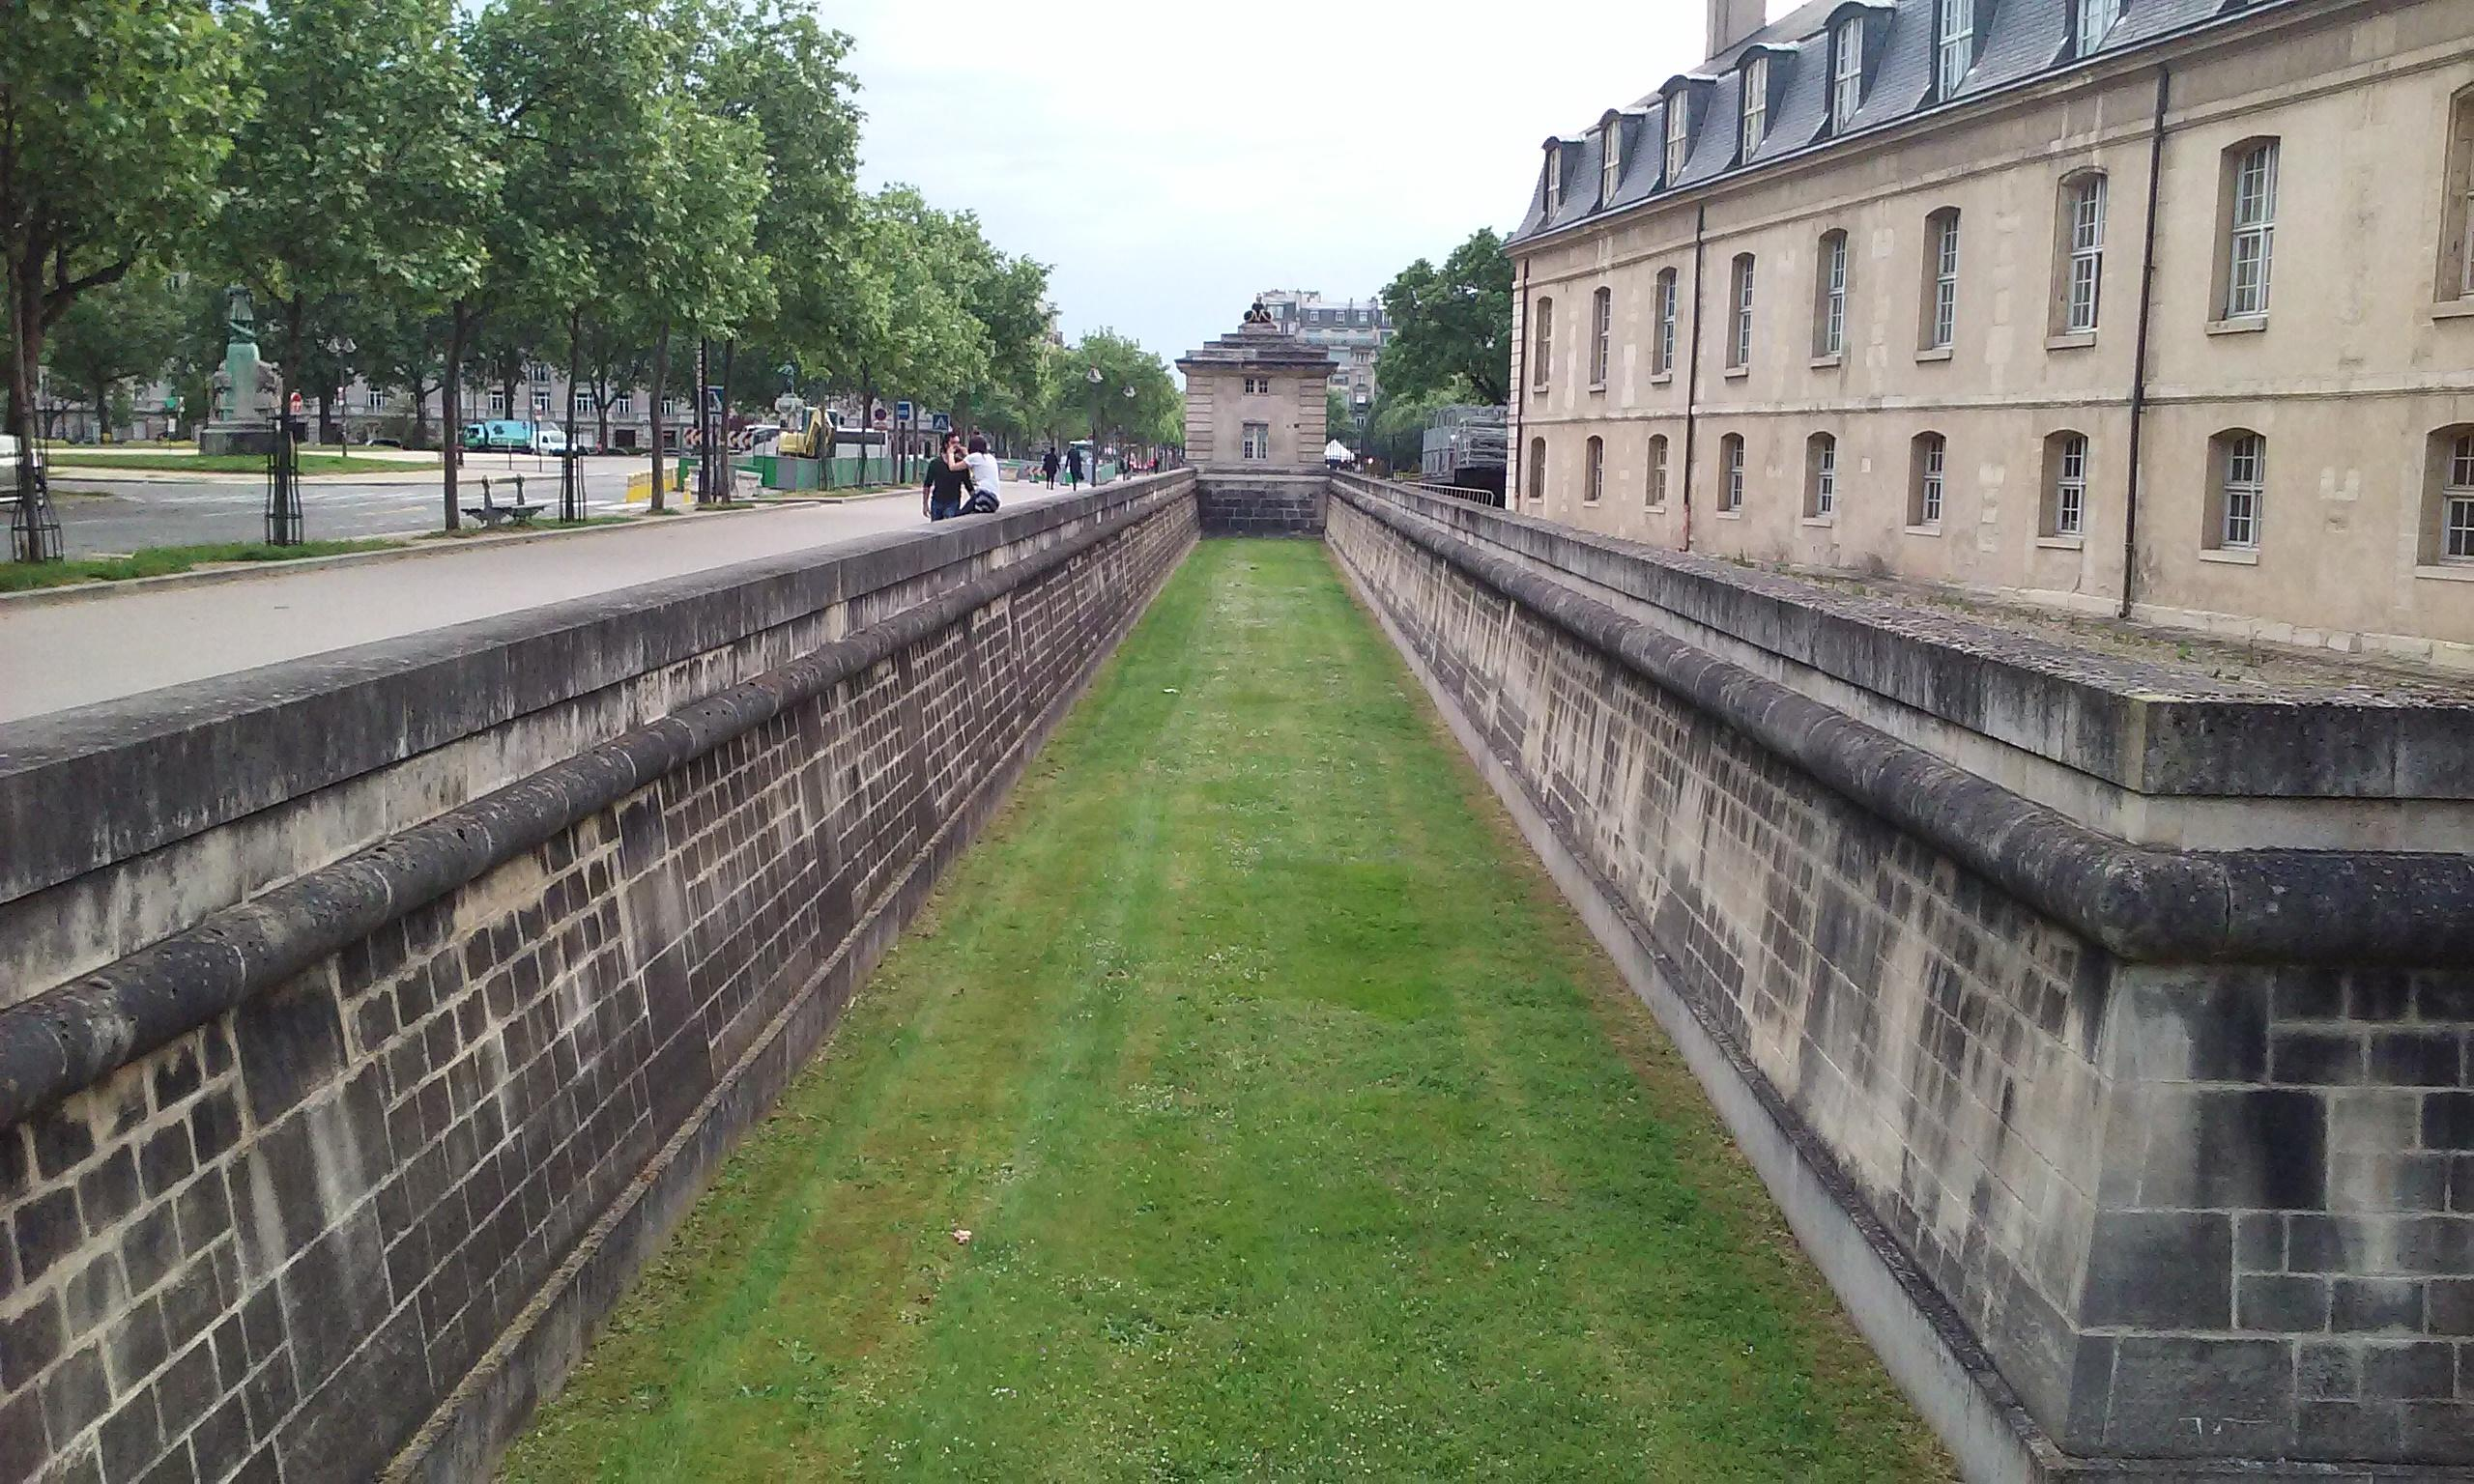 A moat around the Tomb of Napoleon. Paris, France.